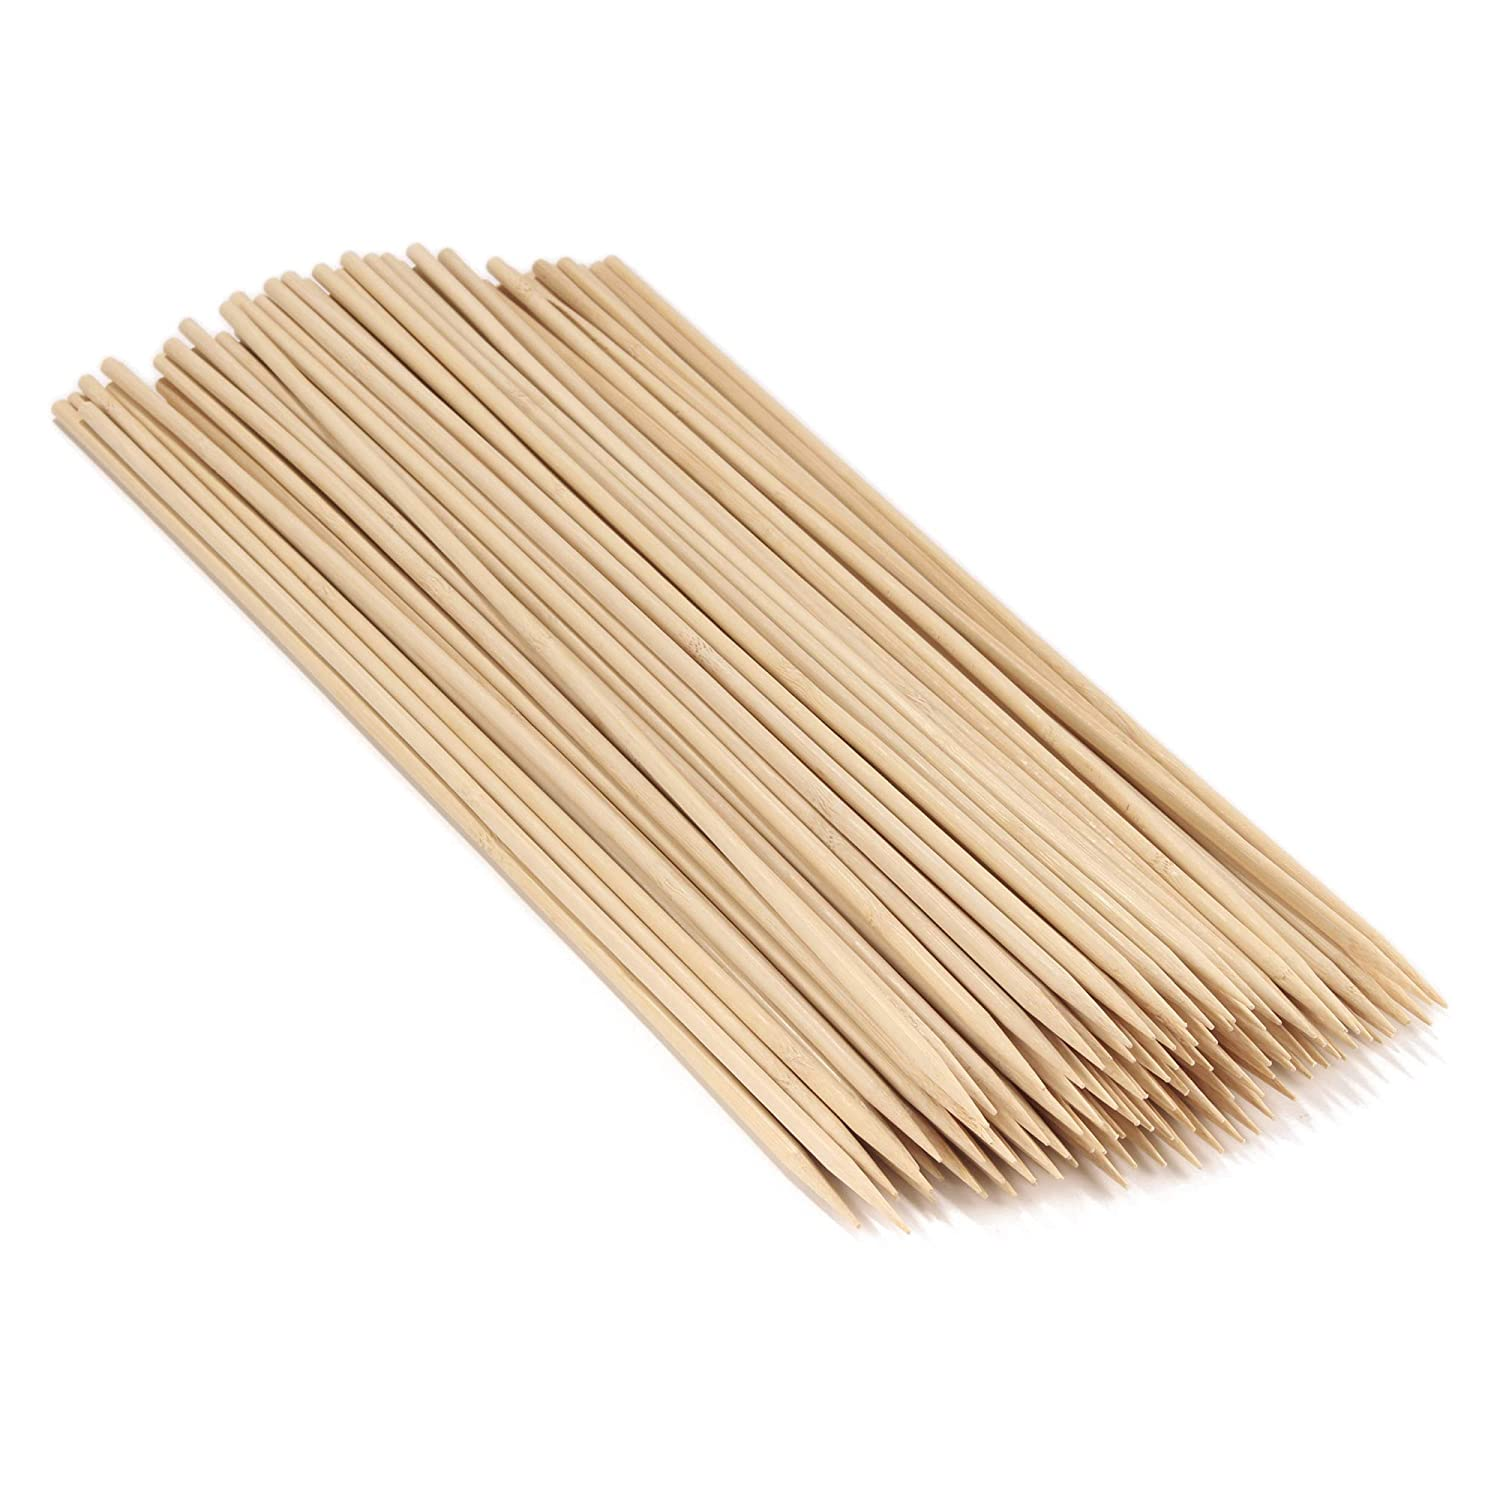 BambooMN 18 Long x 5mm Thick Sharp Point Bamboo Kabab Satay BBQ Skewers Party Supplies 1,000 Pieces 6955114903461a